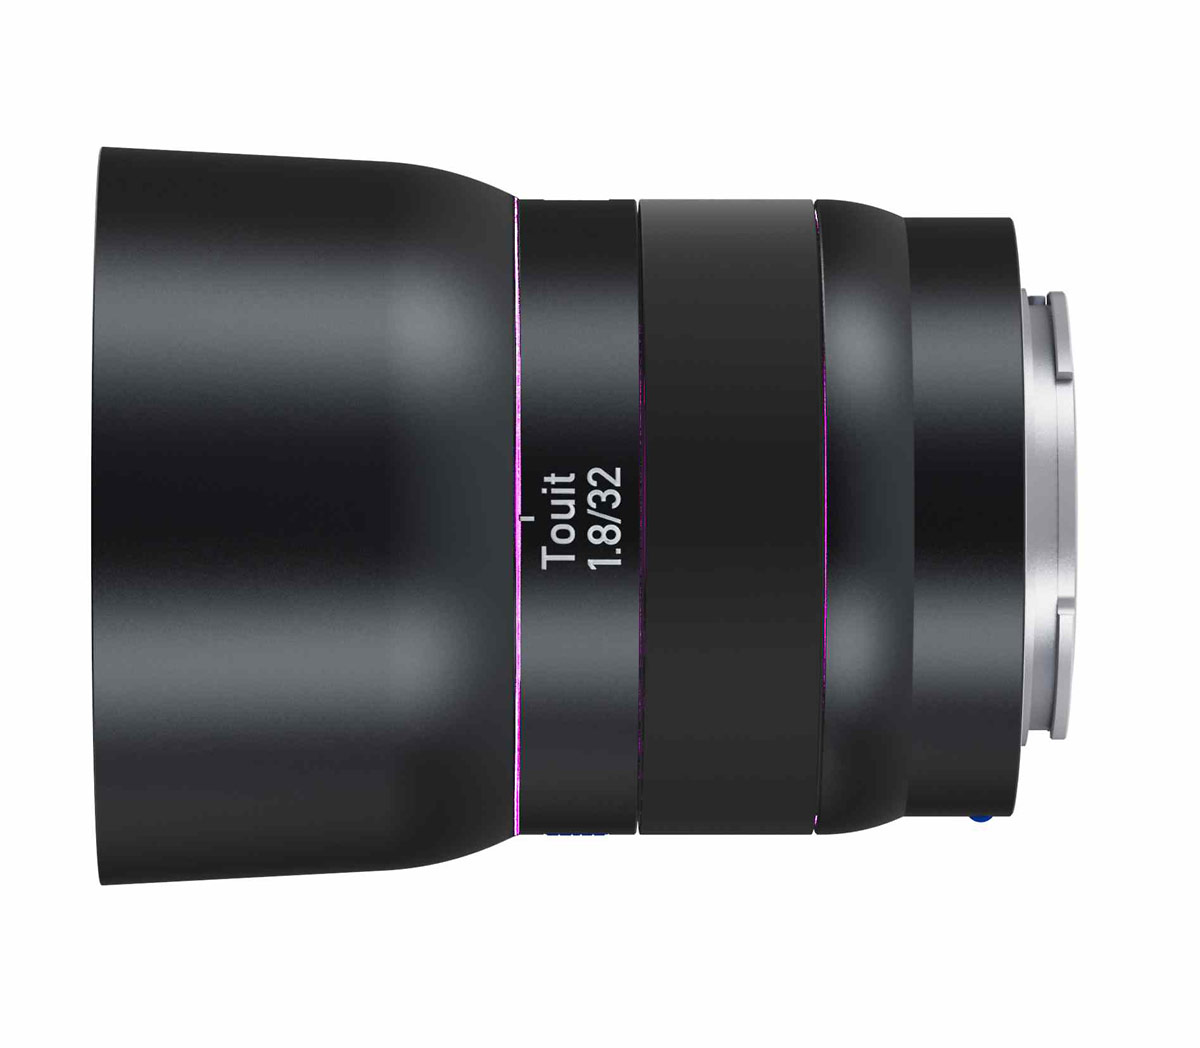 Zeiss Touit 1.8/32 32mm Prime Lens With Hood